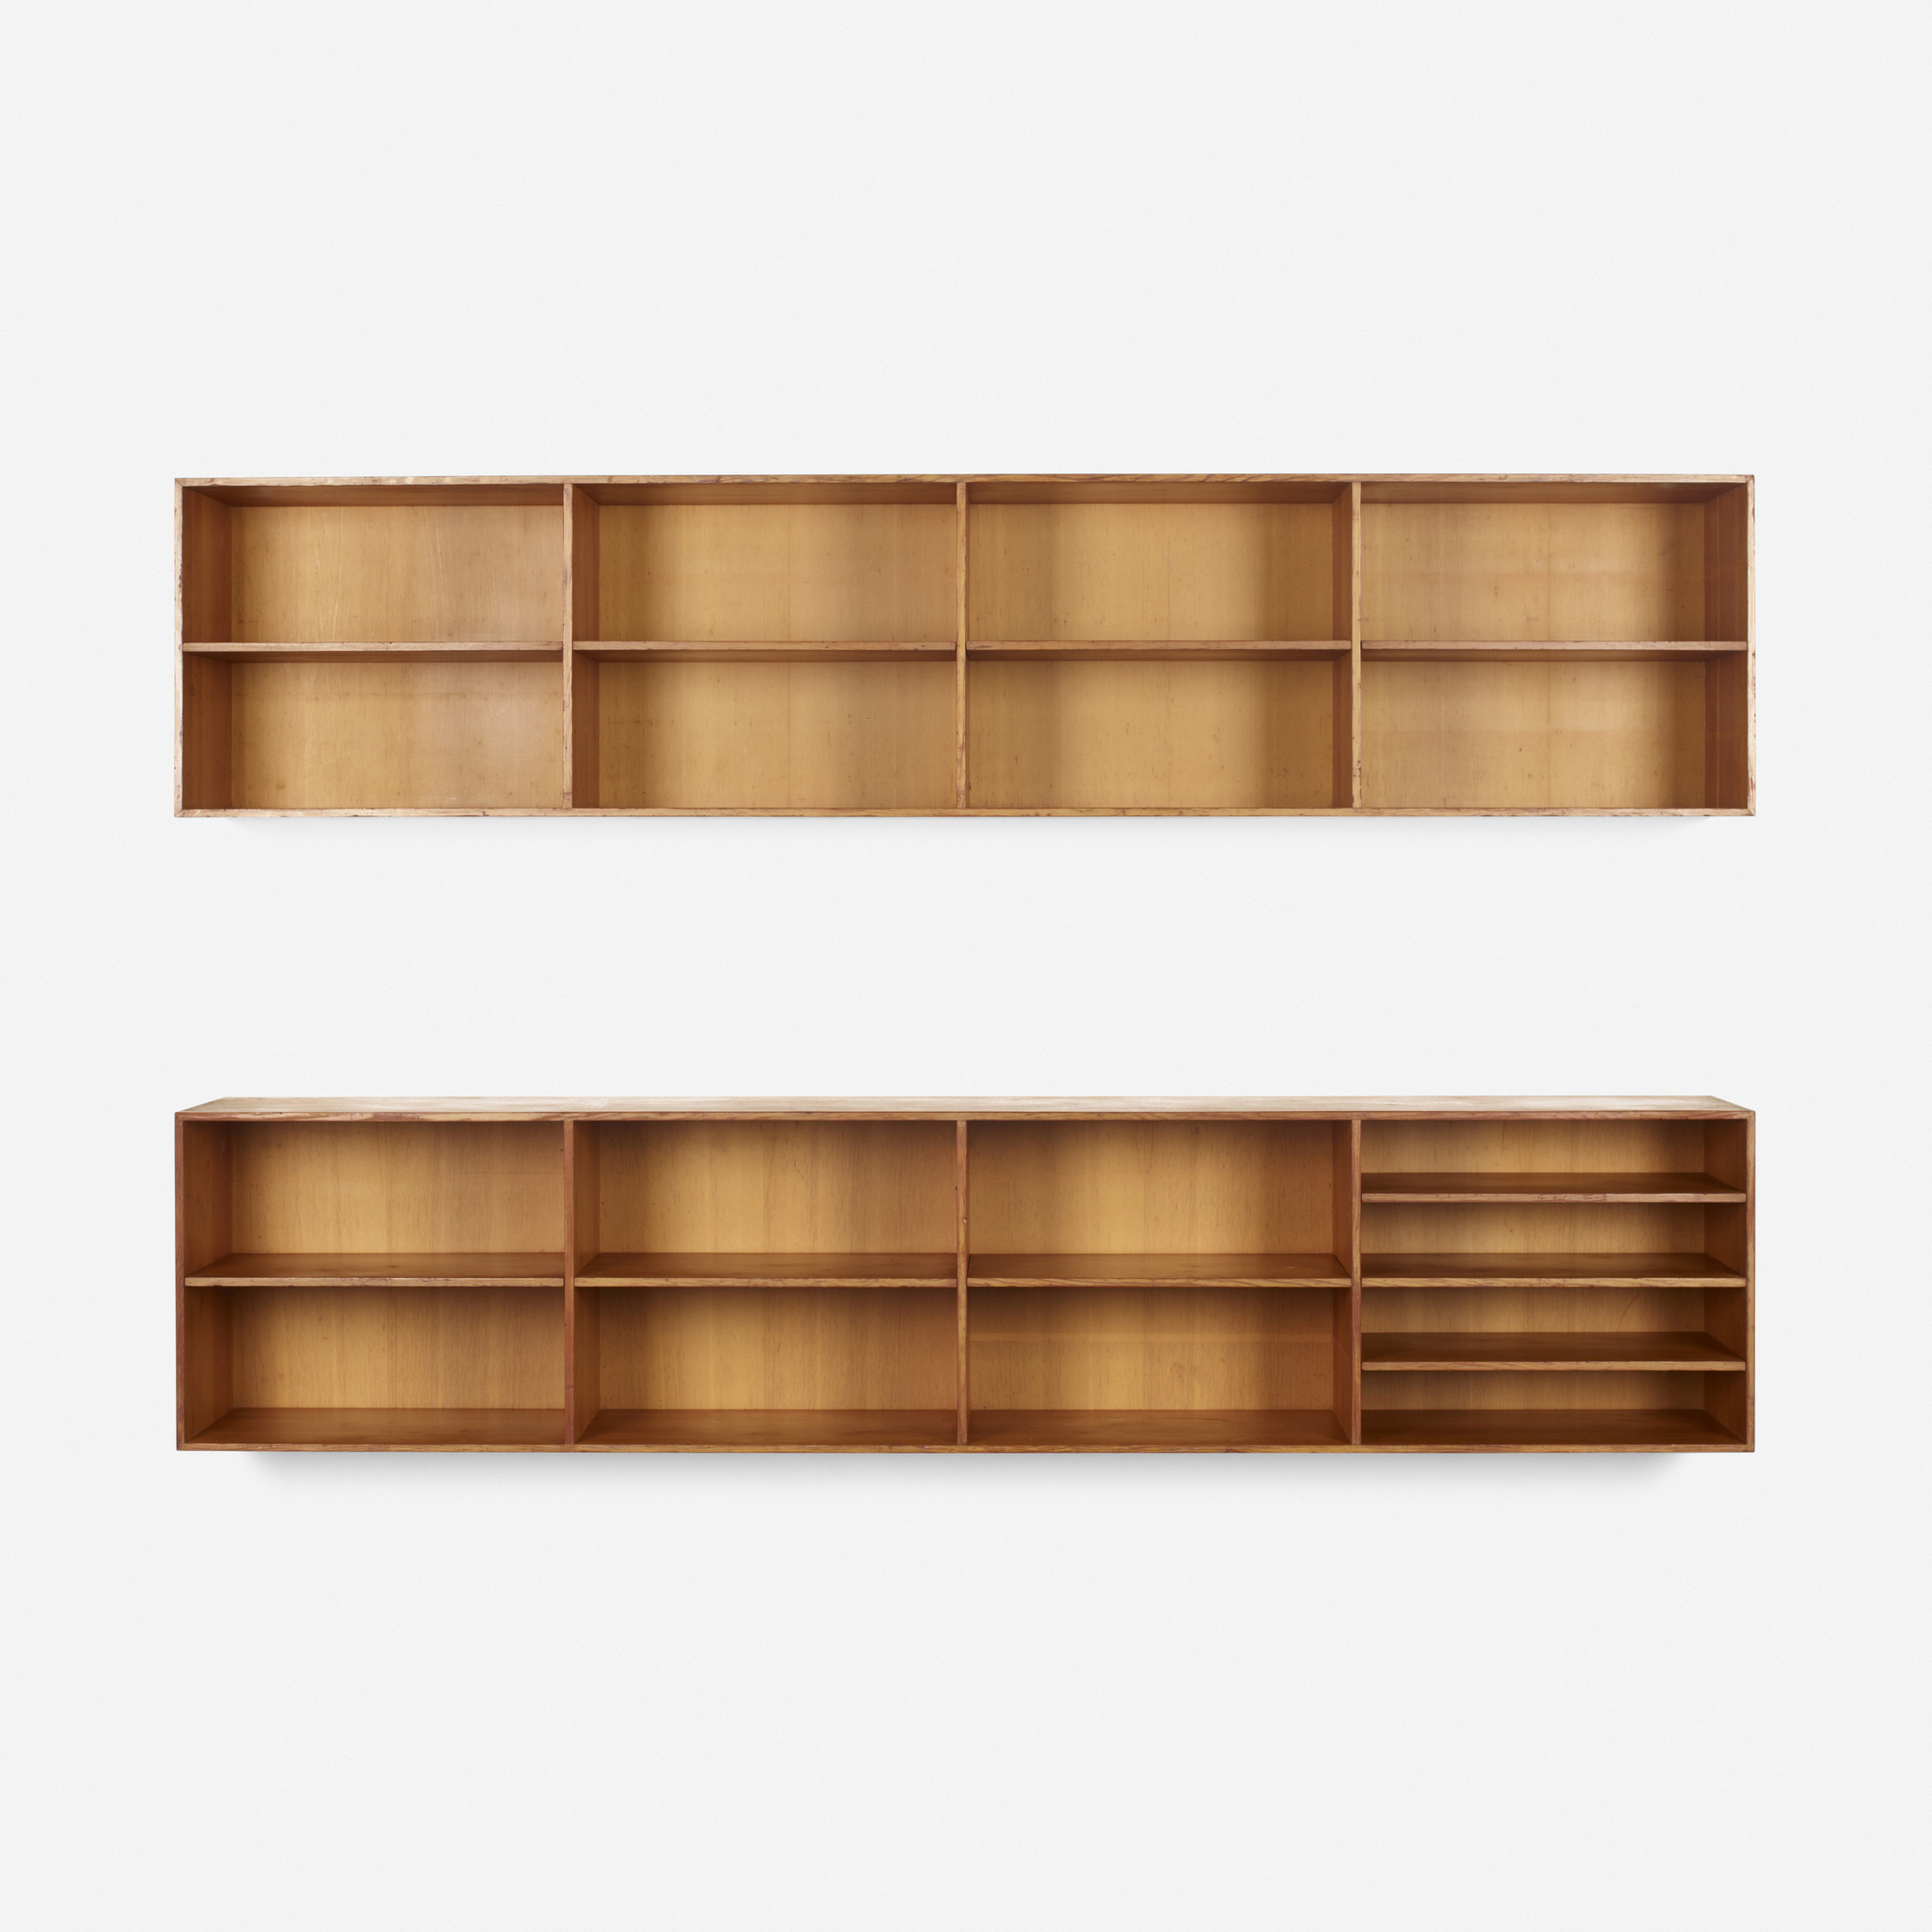 344 mogens koch wallmounted bookcases pair 2 of 2 - Wall Mounted Bookcase